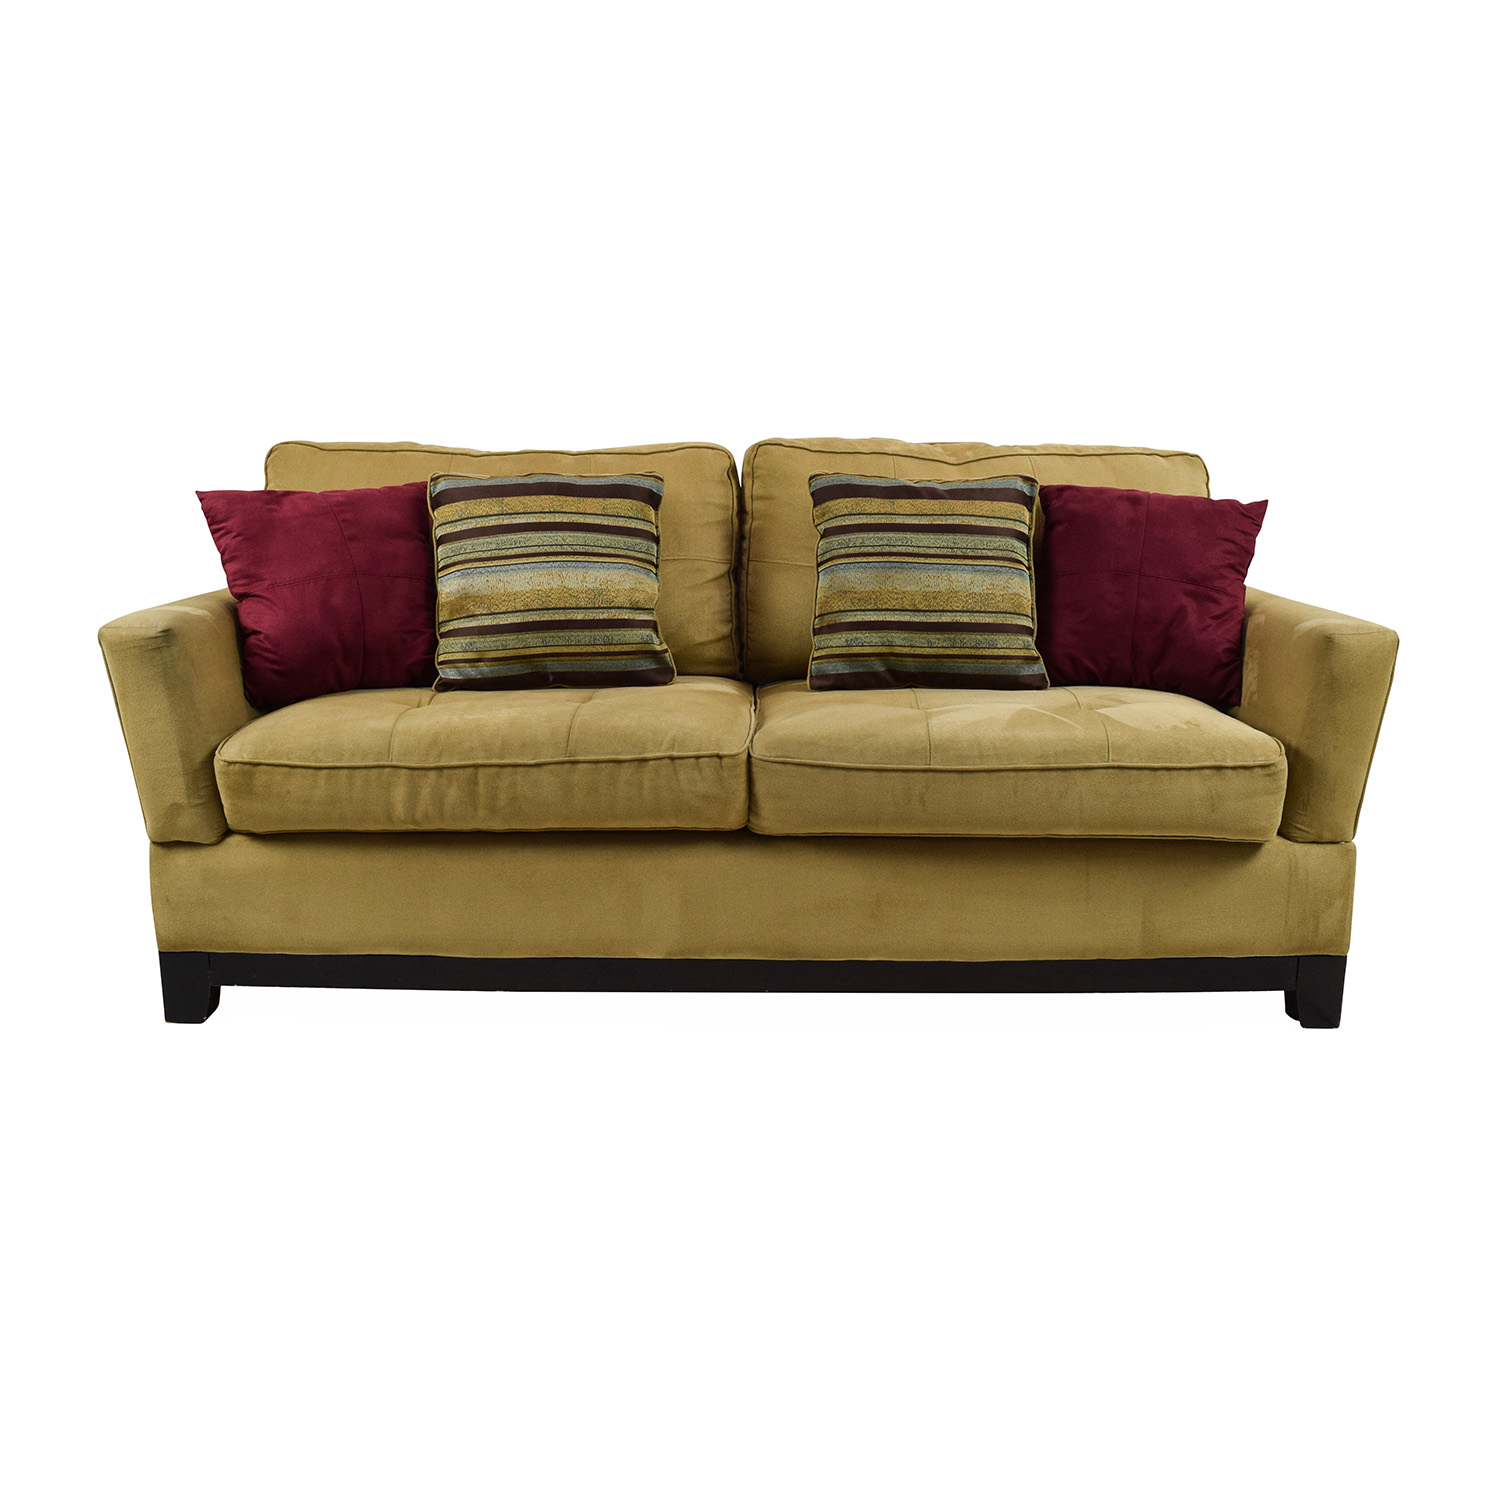 Jennifer Convertibles Sofas Contemporary Decoration